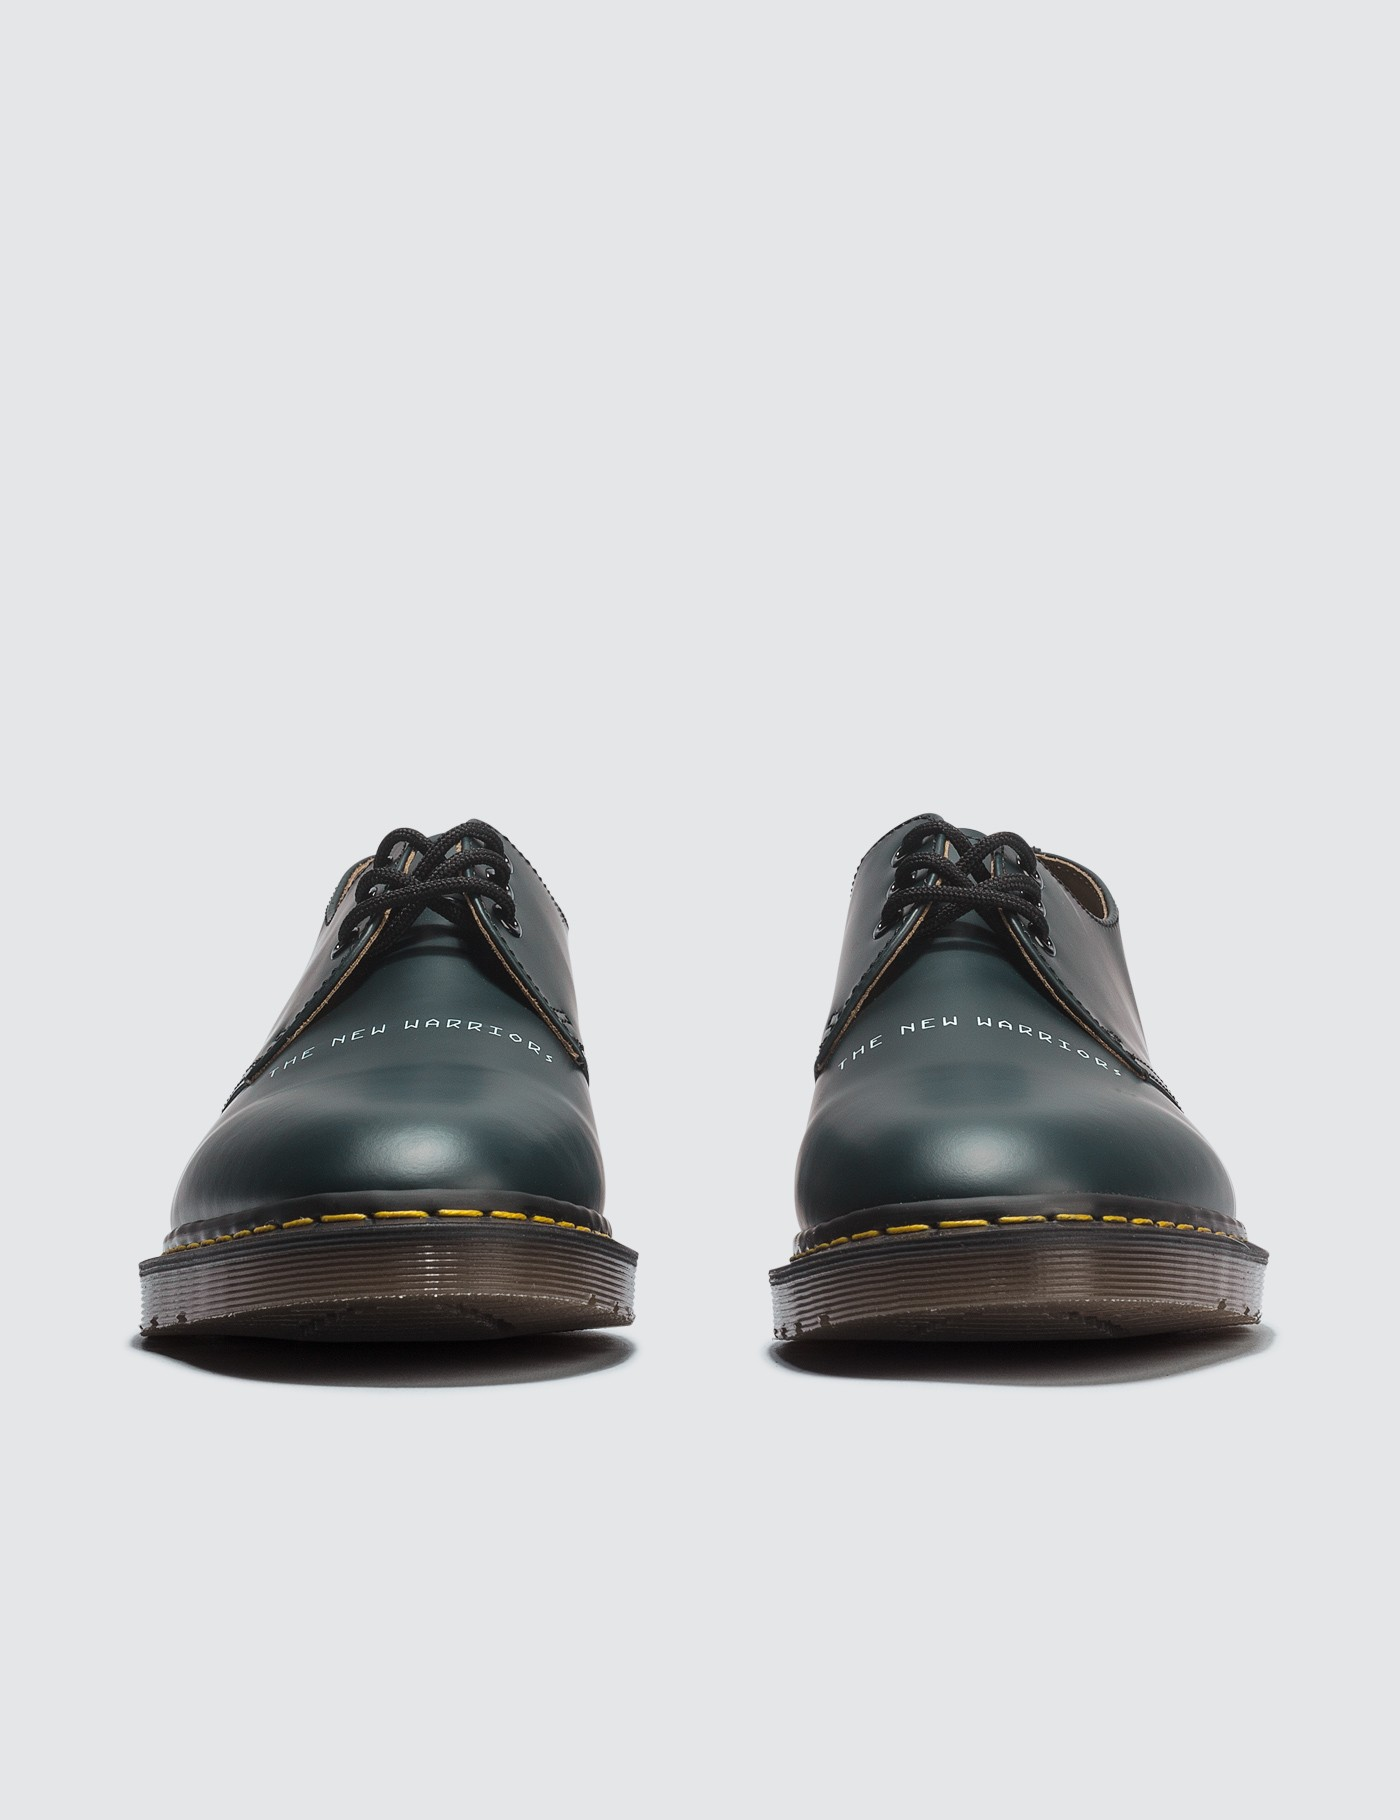 Dr. Martens Undercover x  1461 Printed Shoes